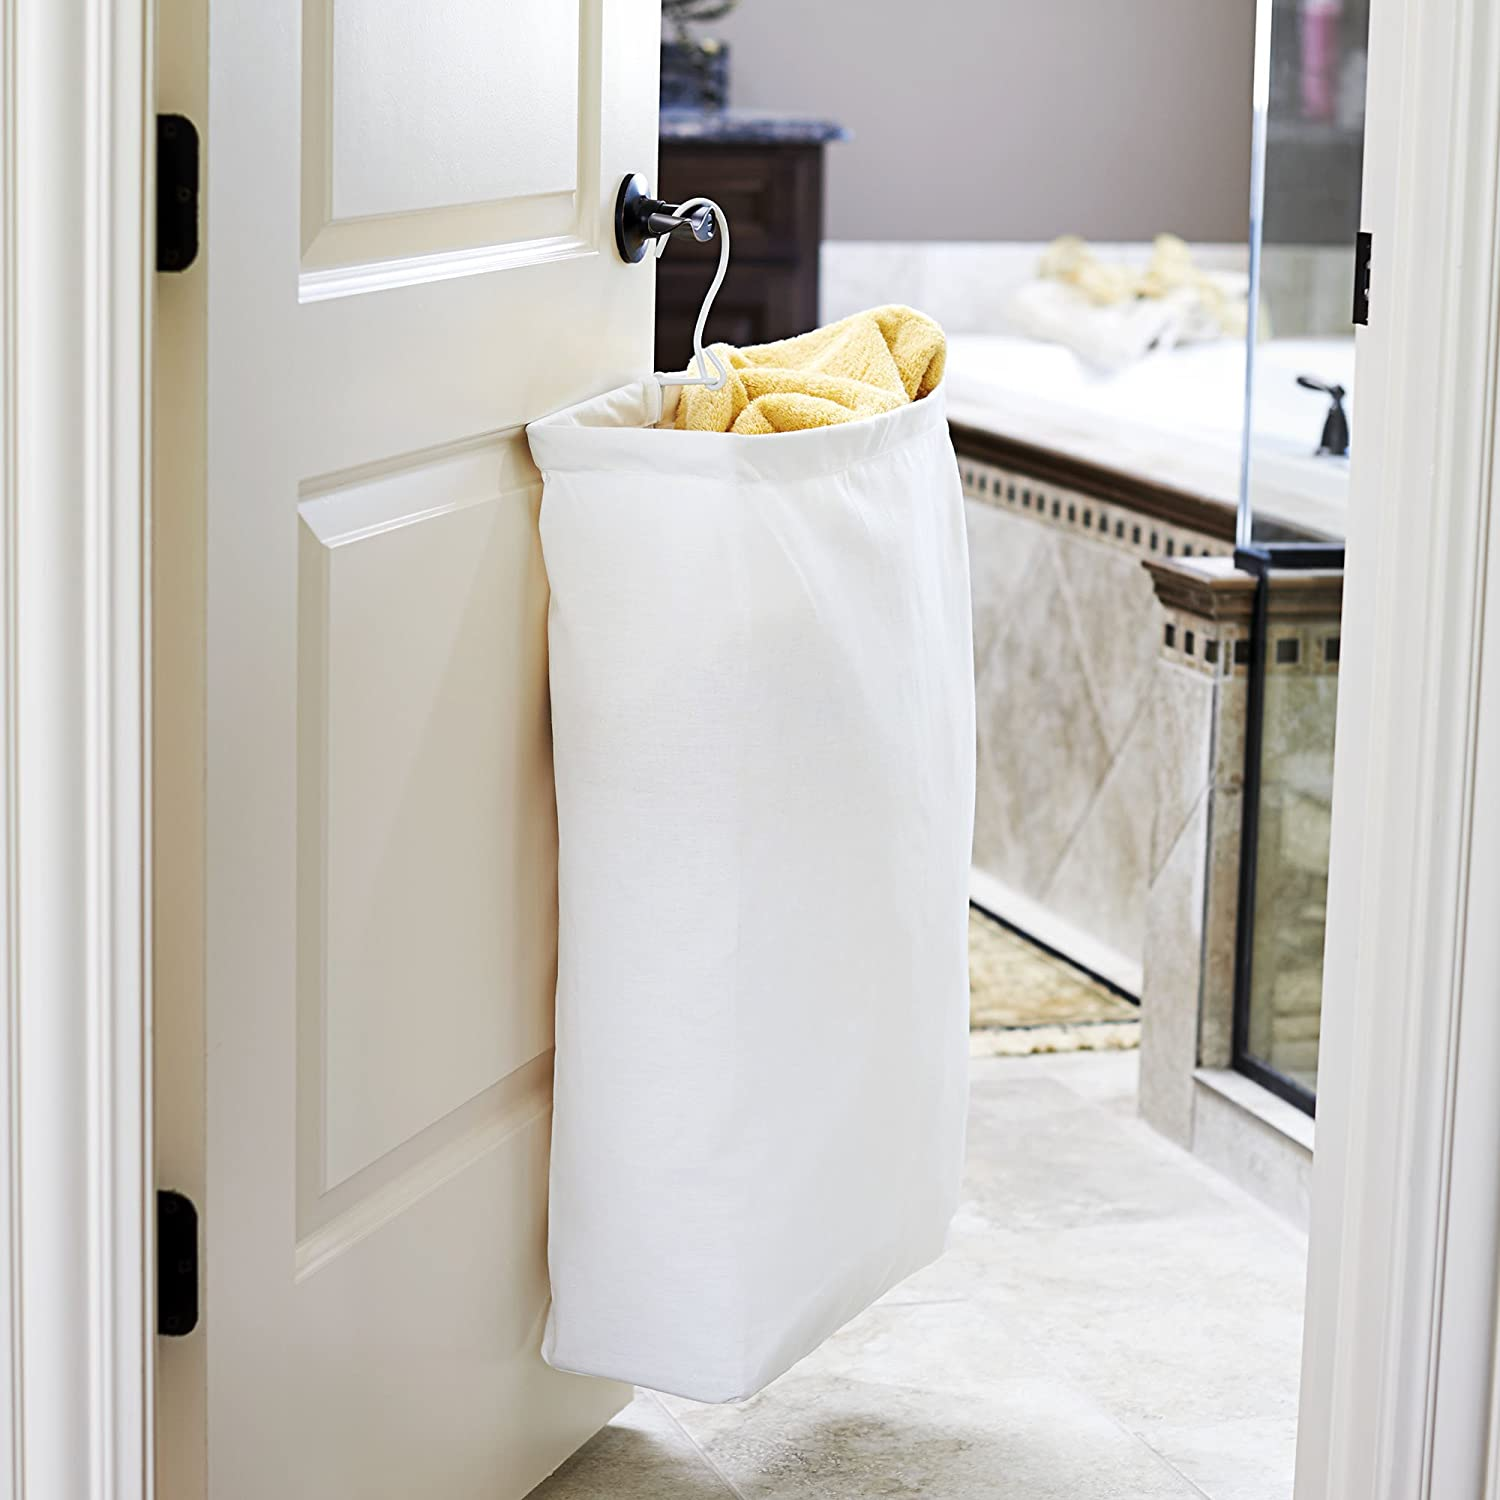 Amazon: Household Essentials 148 Hanging Cotton Canvas Laundry Hamper  Bag  White: Home & Kitchen